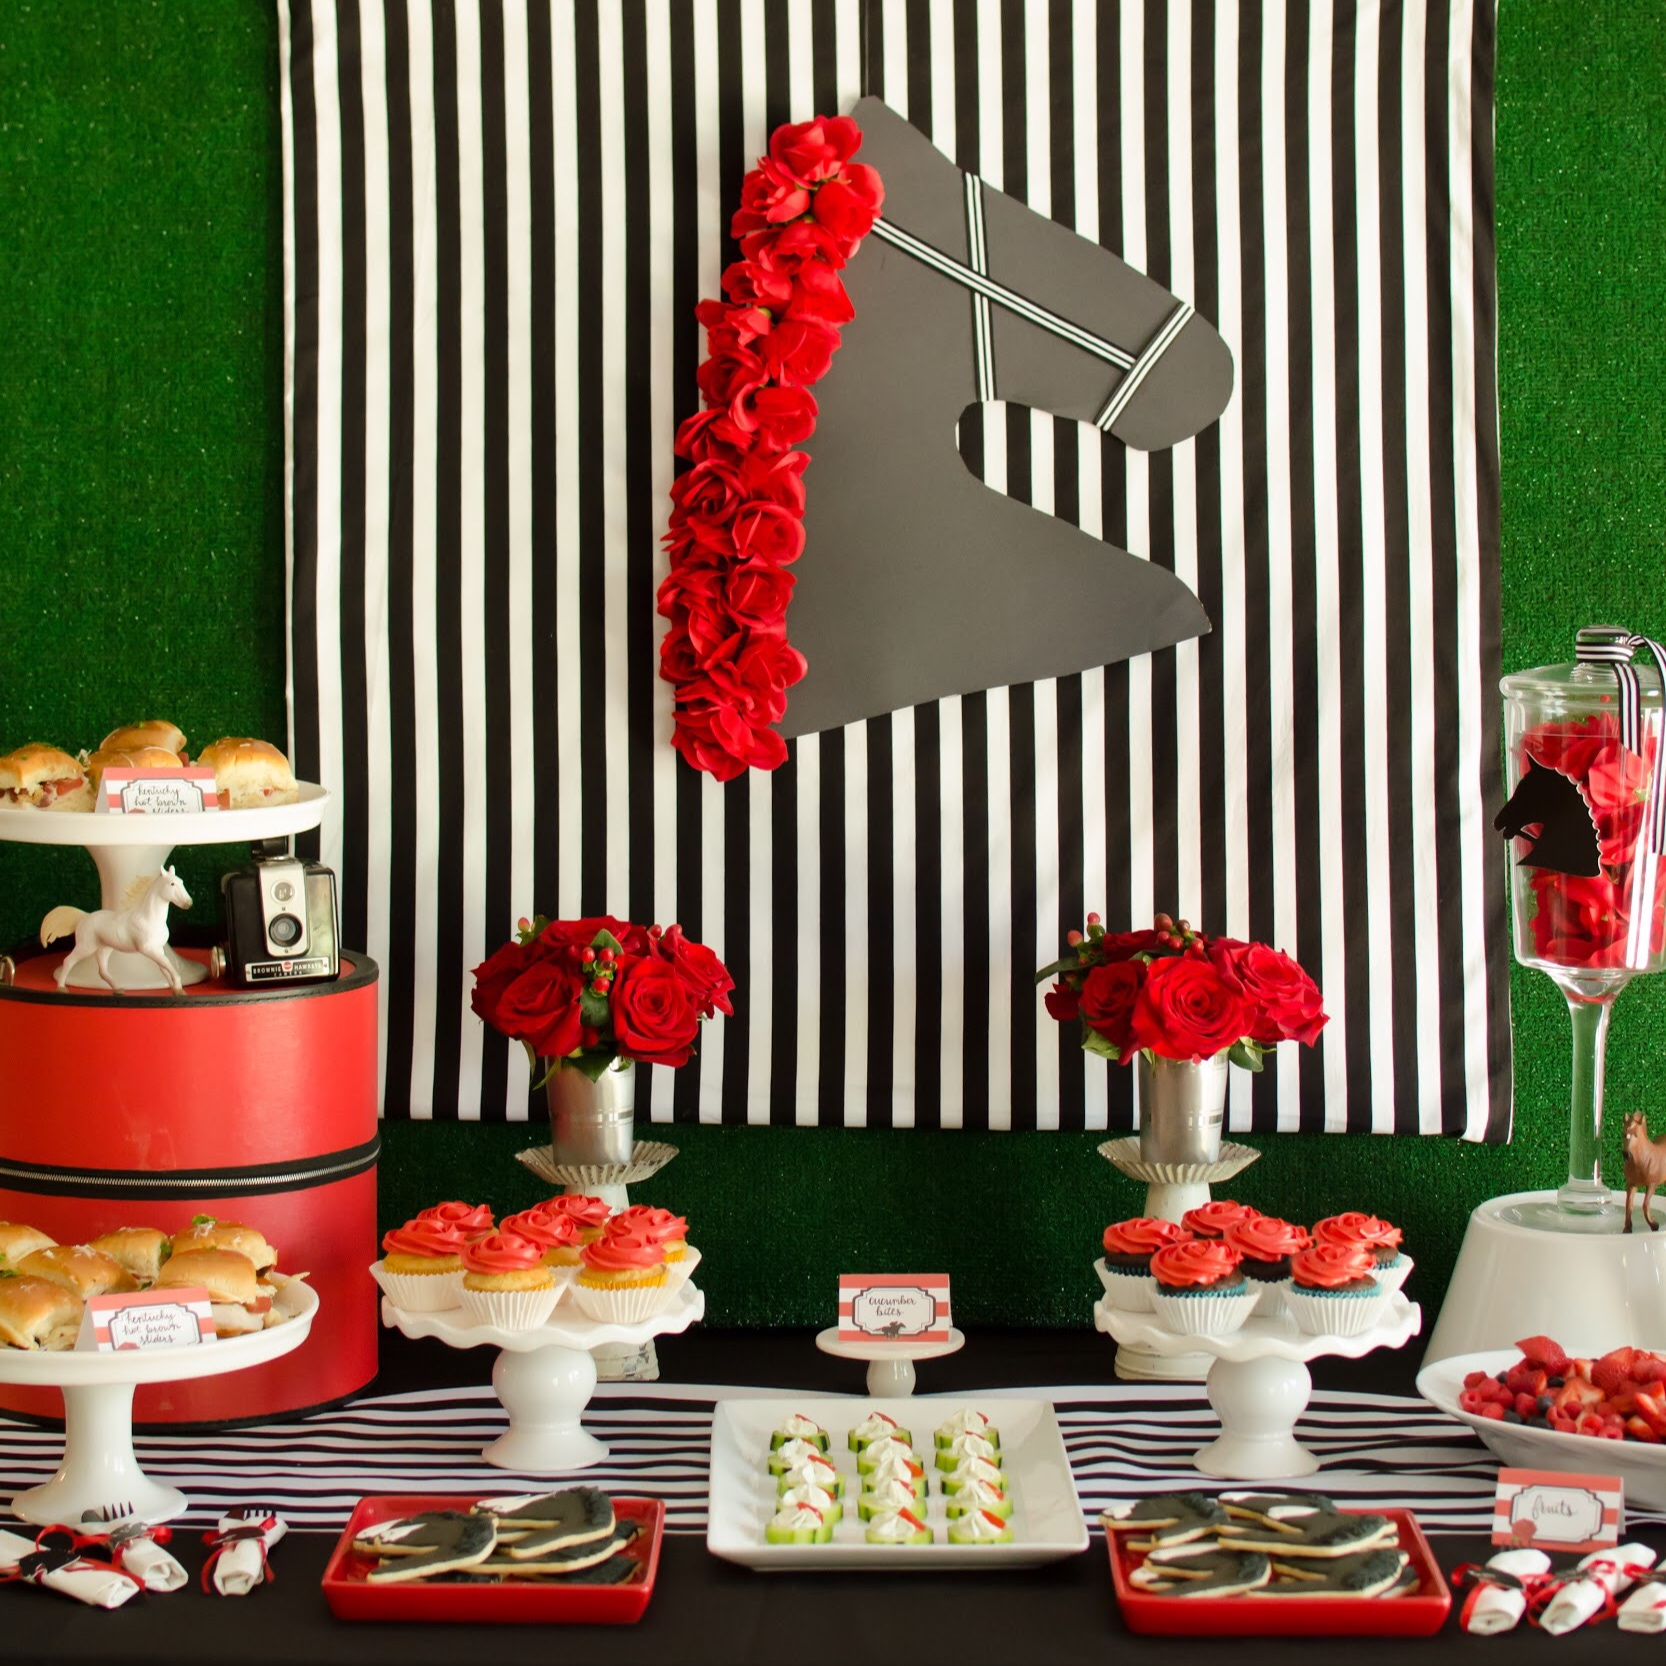 Red, black, and white Kentucky Derby Party Ideas from Mint Event Design www.minteventdesign.com